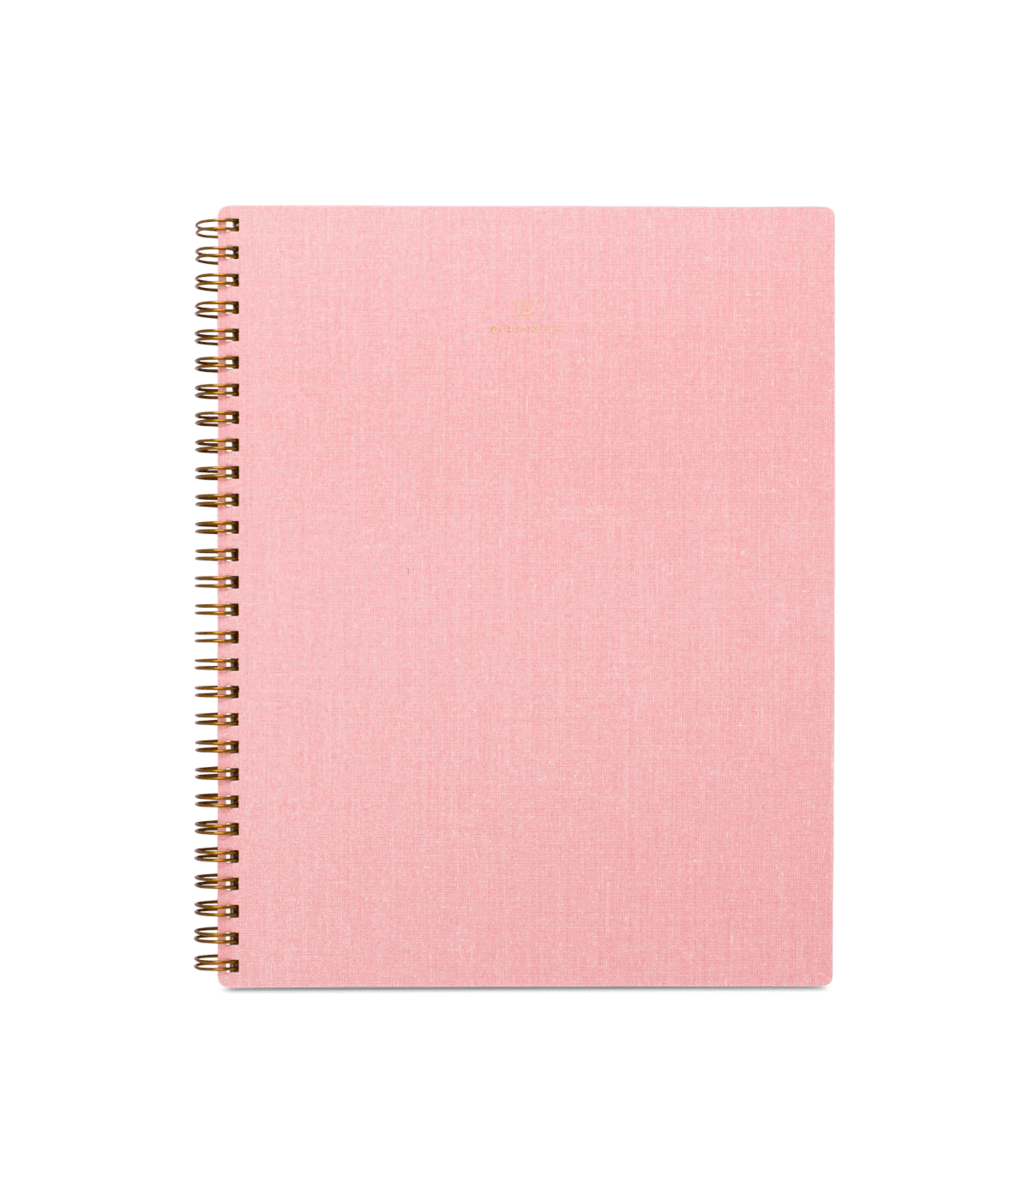 Notebook PNG And Notebook PC Images Free Download